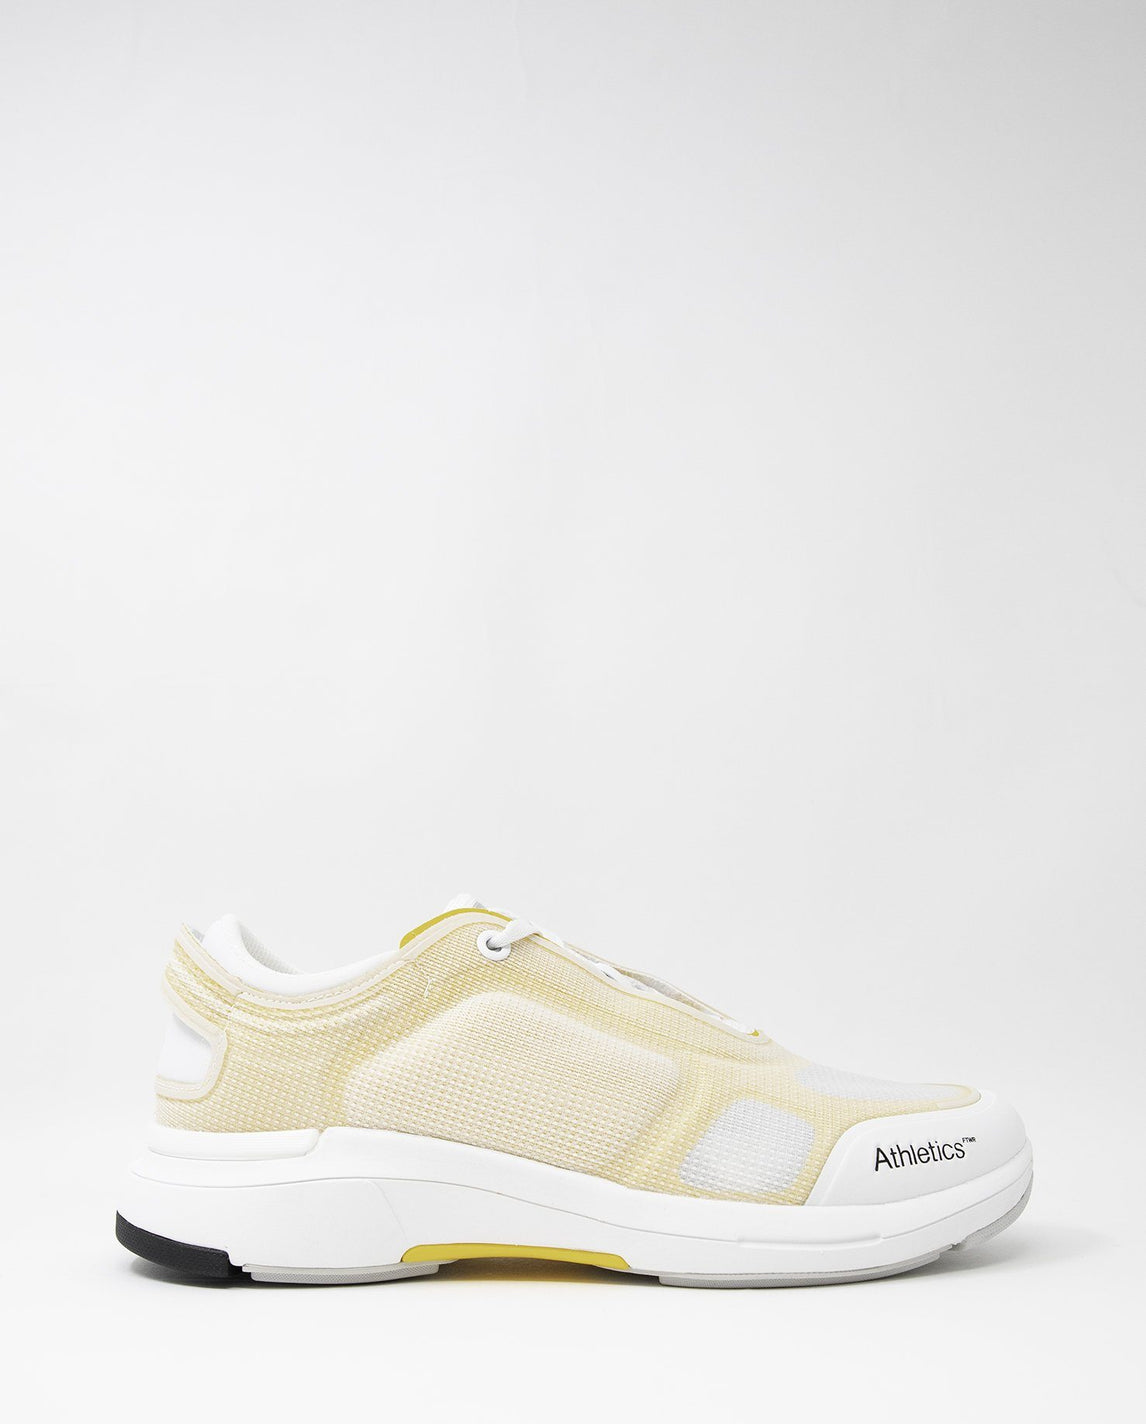 Athletics One Trainer - Cadmium Yellow / White UNISEX ATHLETICS FOOTWEAR